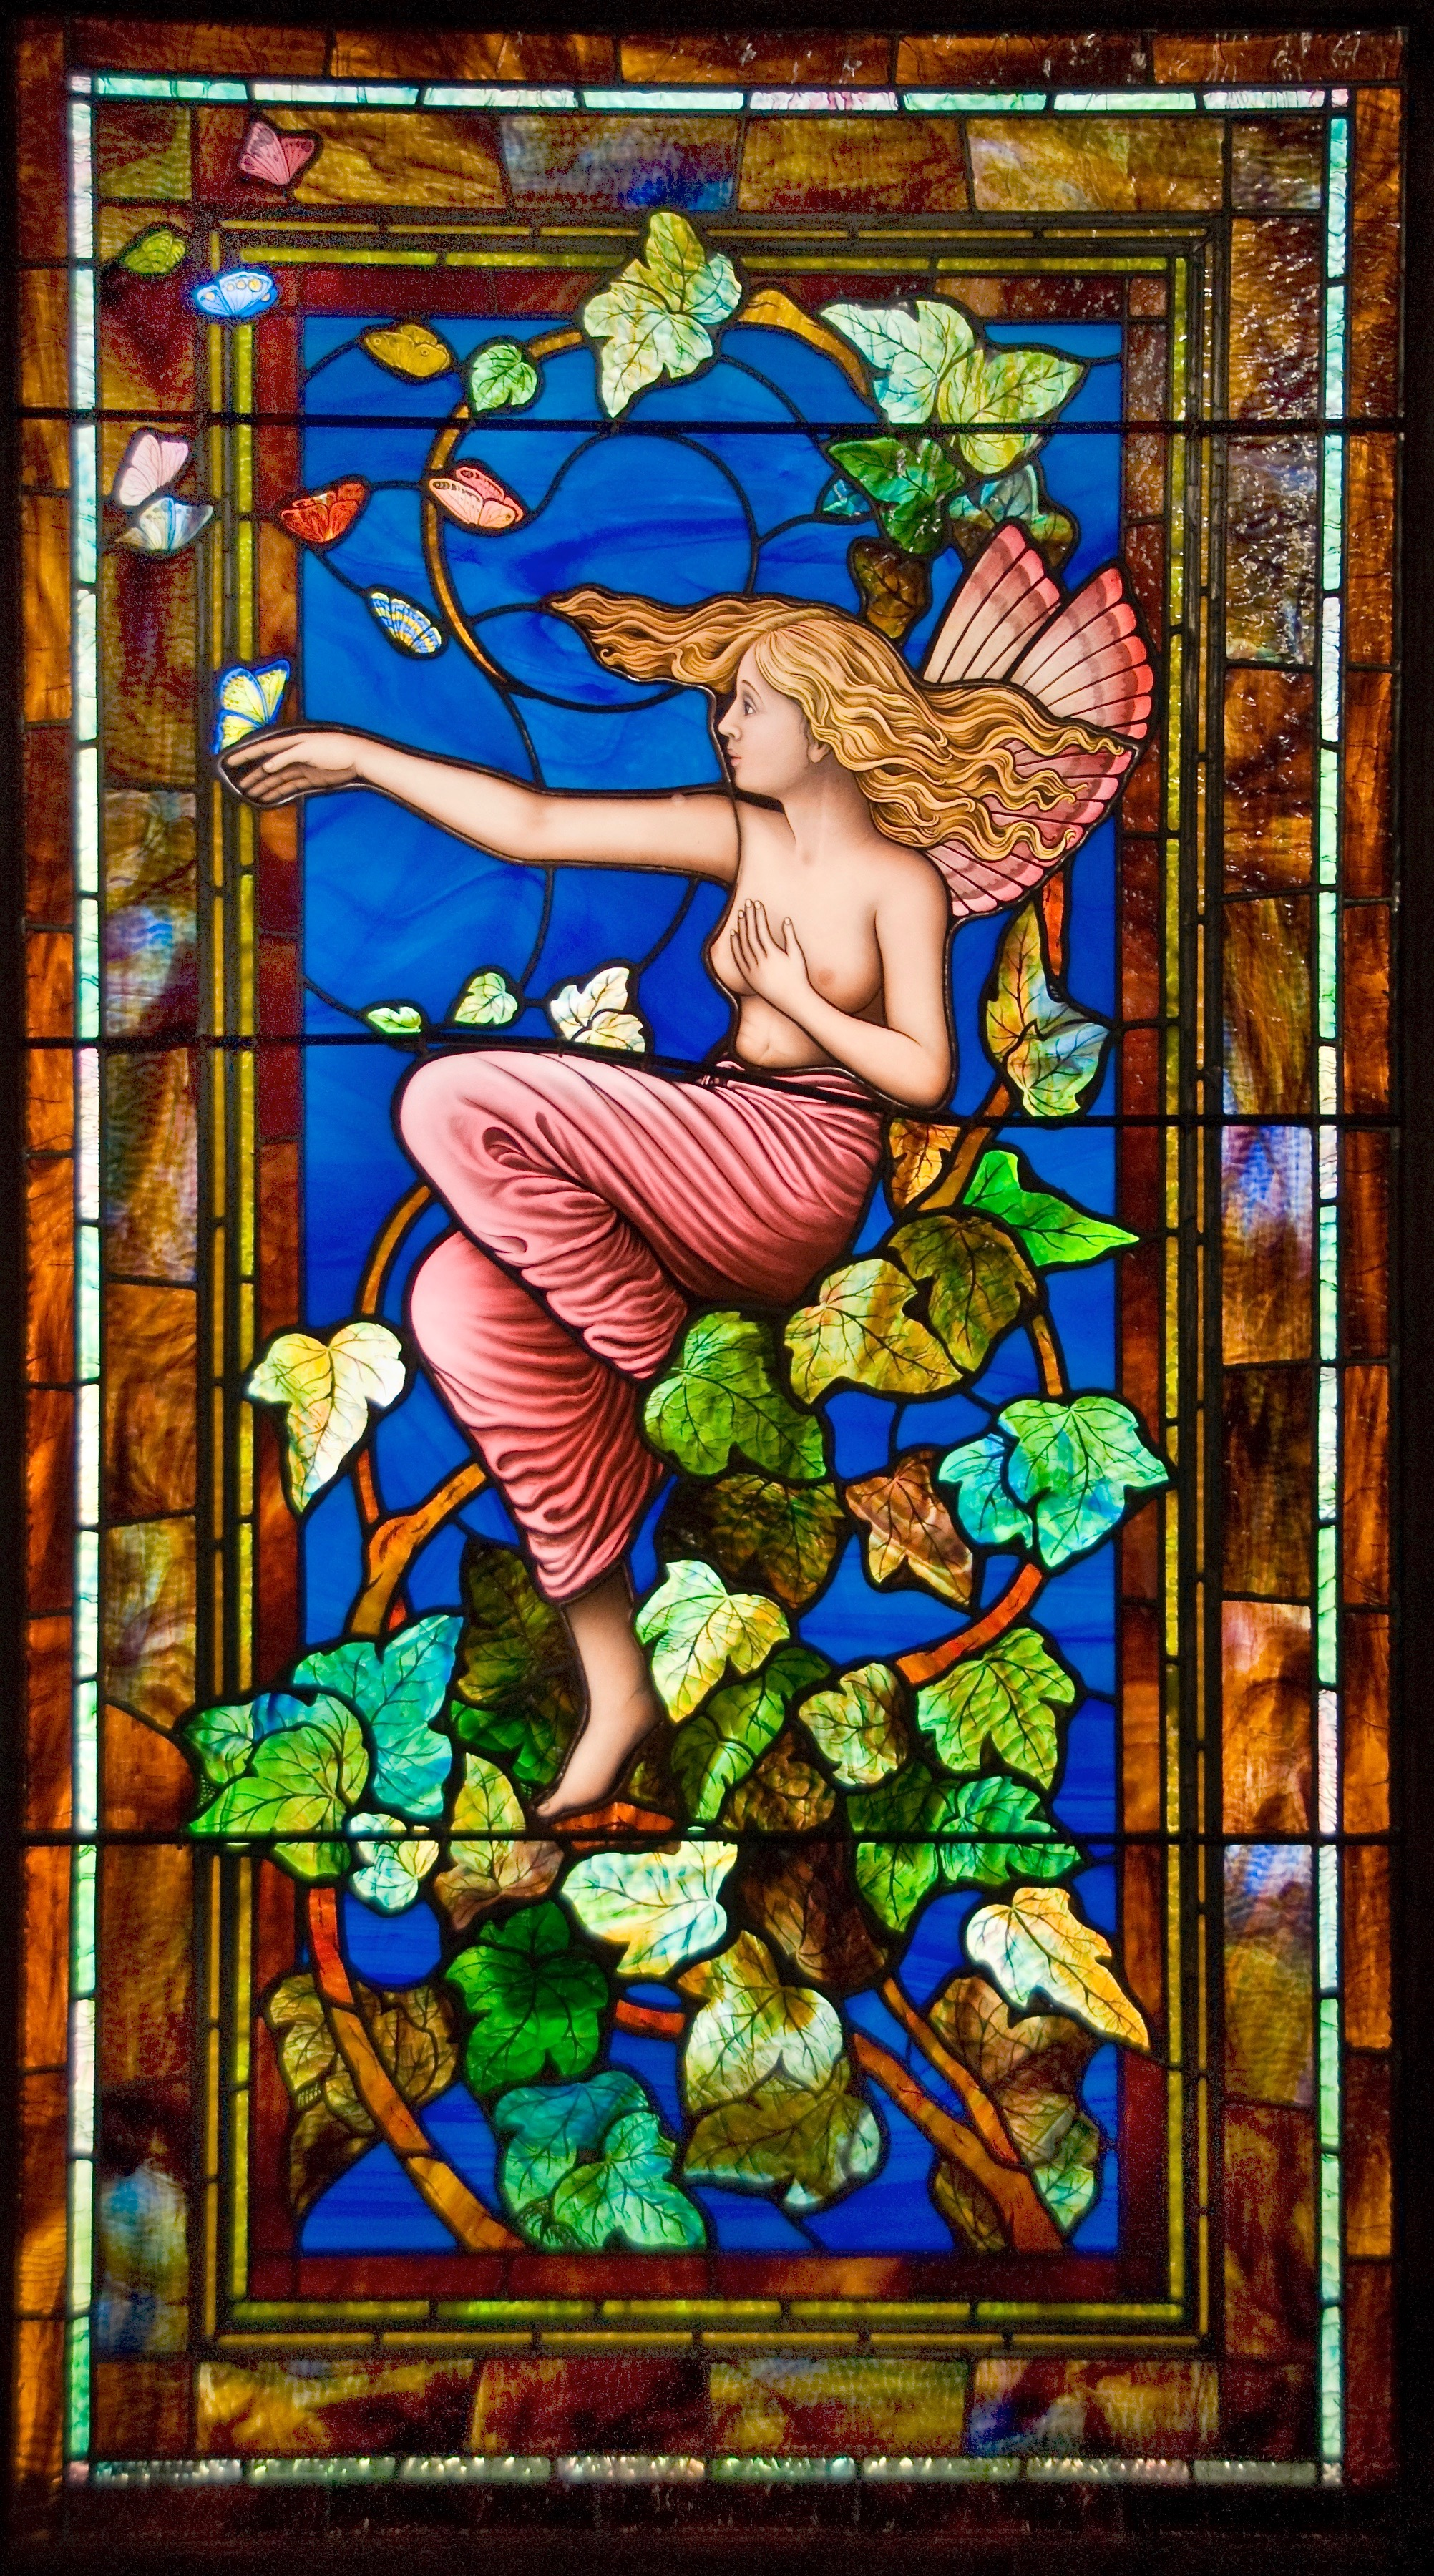 Wood Nymph Stained glass window